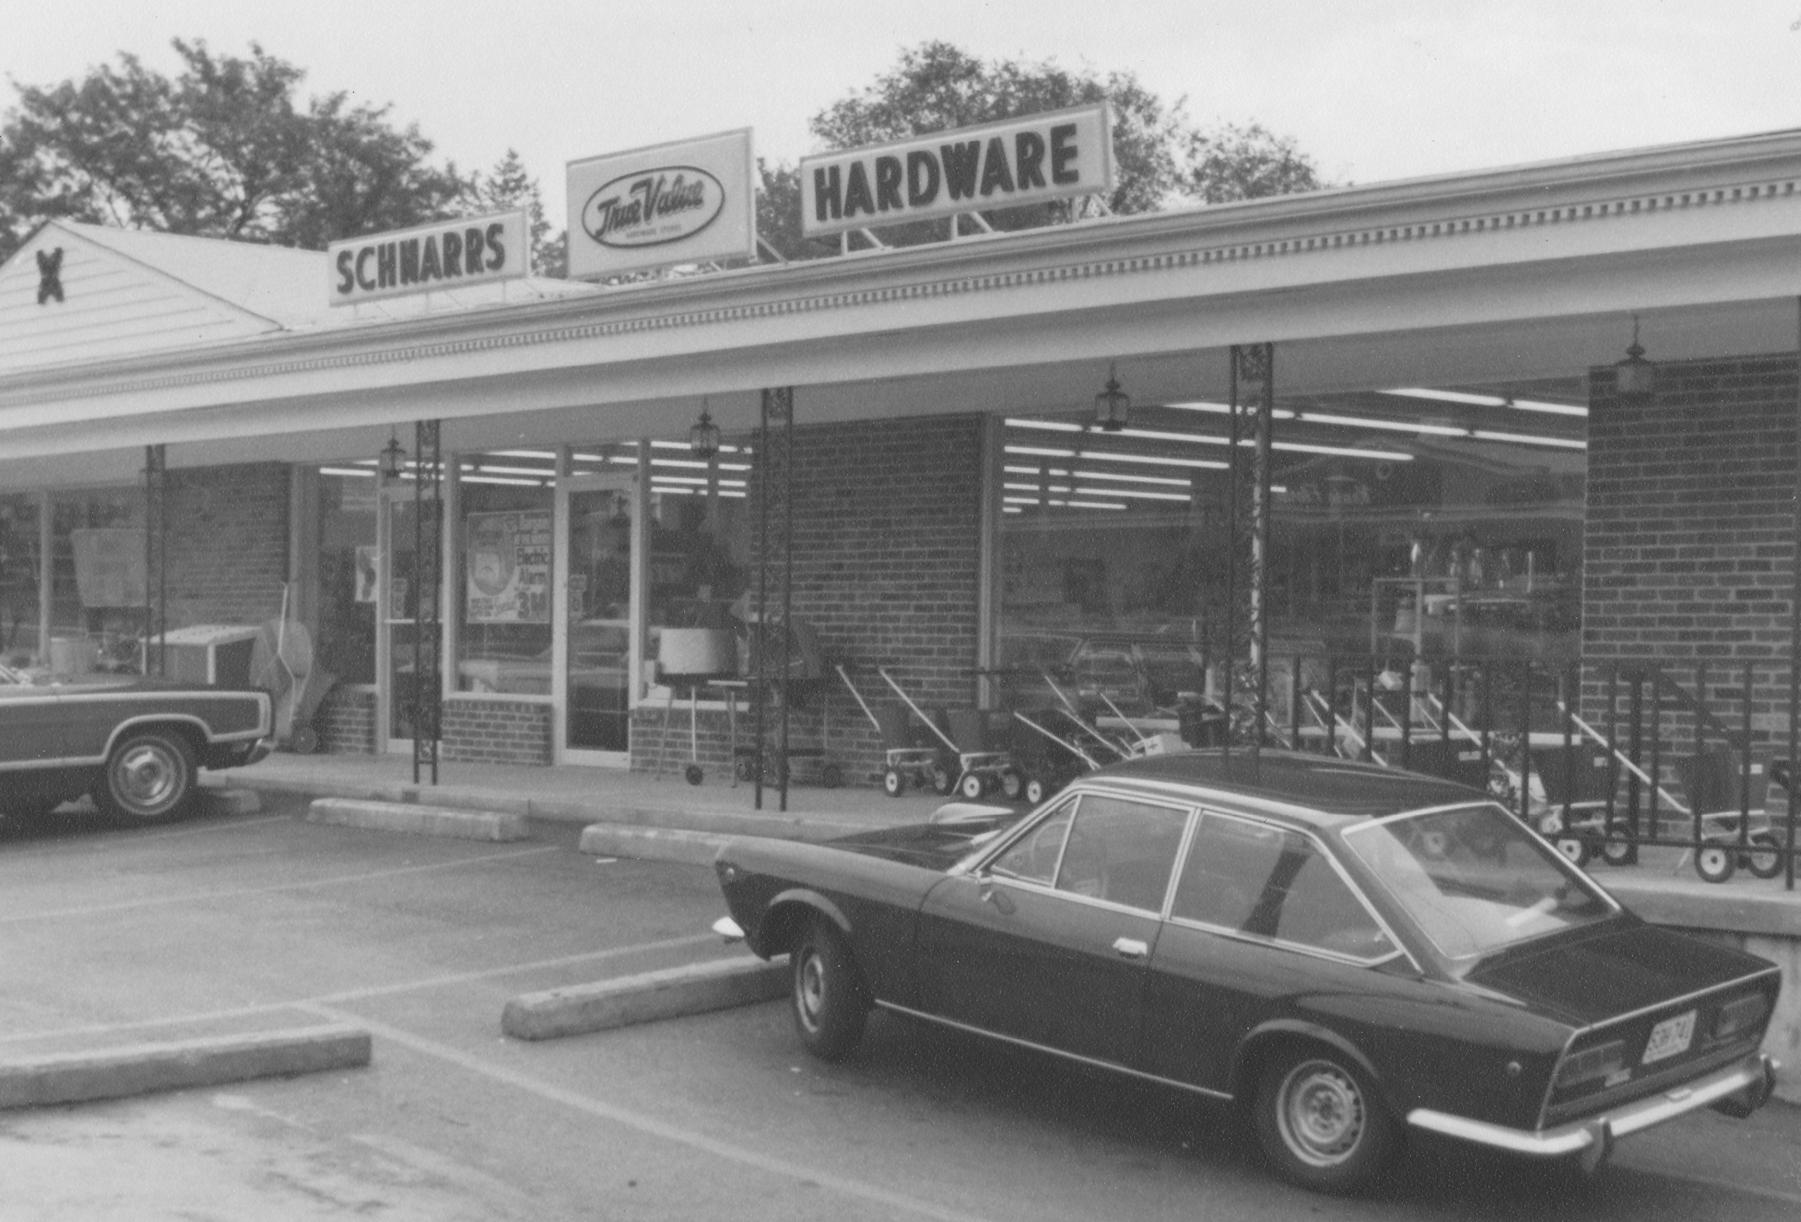 A retro view of Schnarr's Hardware